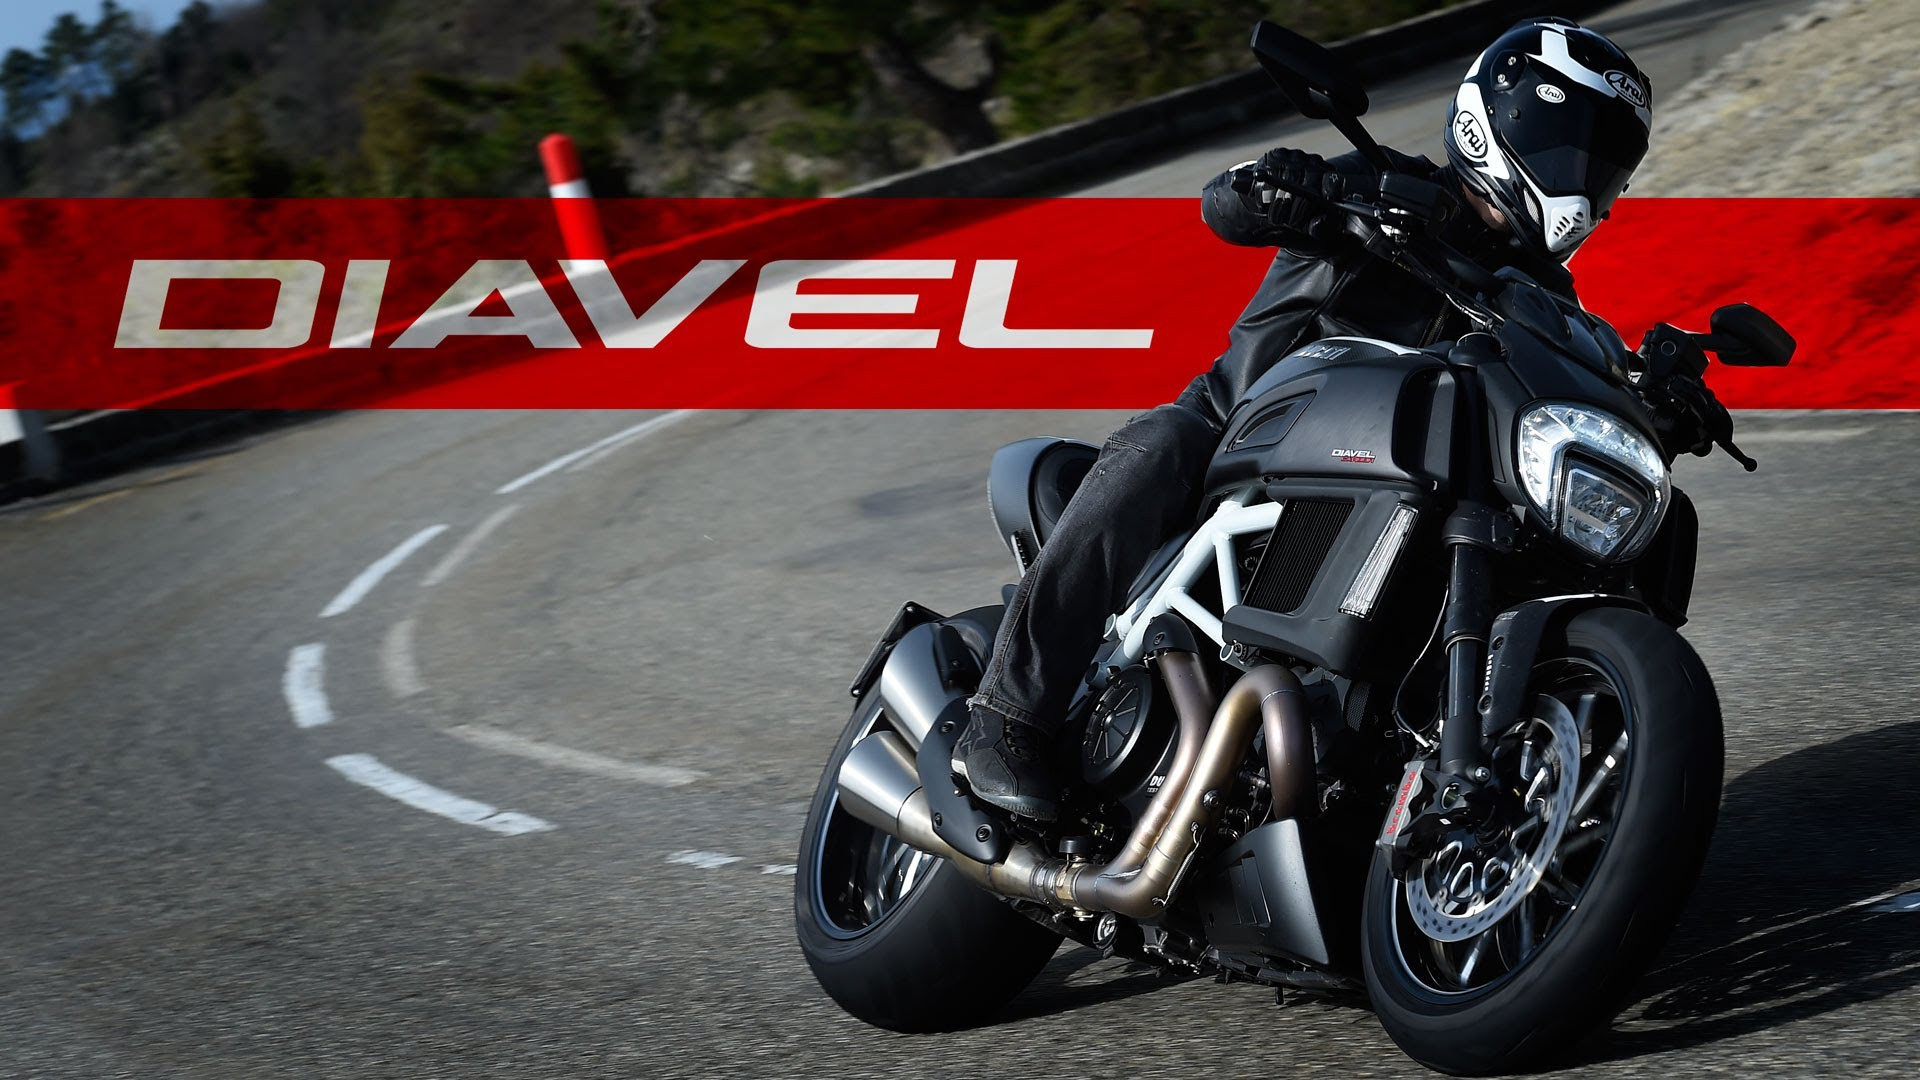 ducati diavel wallpapers images photos pictures backgrounds. Black Bedroom Furniture Sets. Home Design Ideas